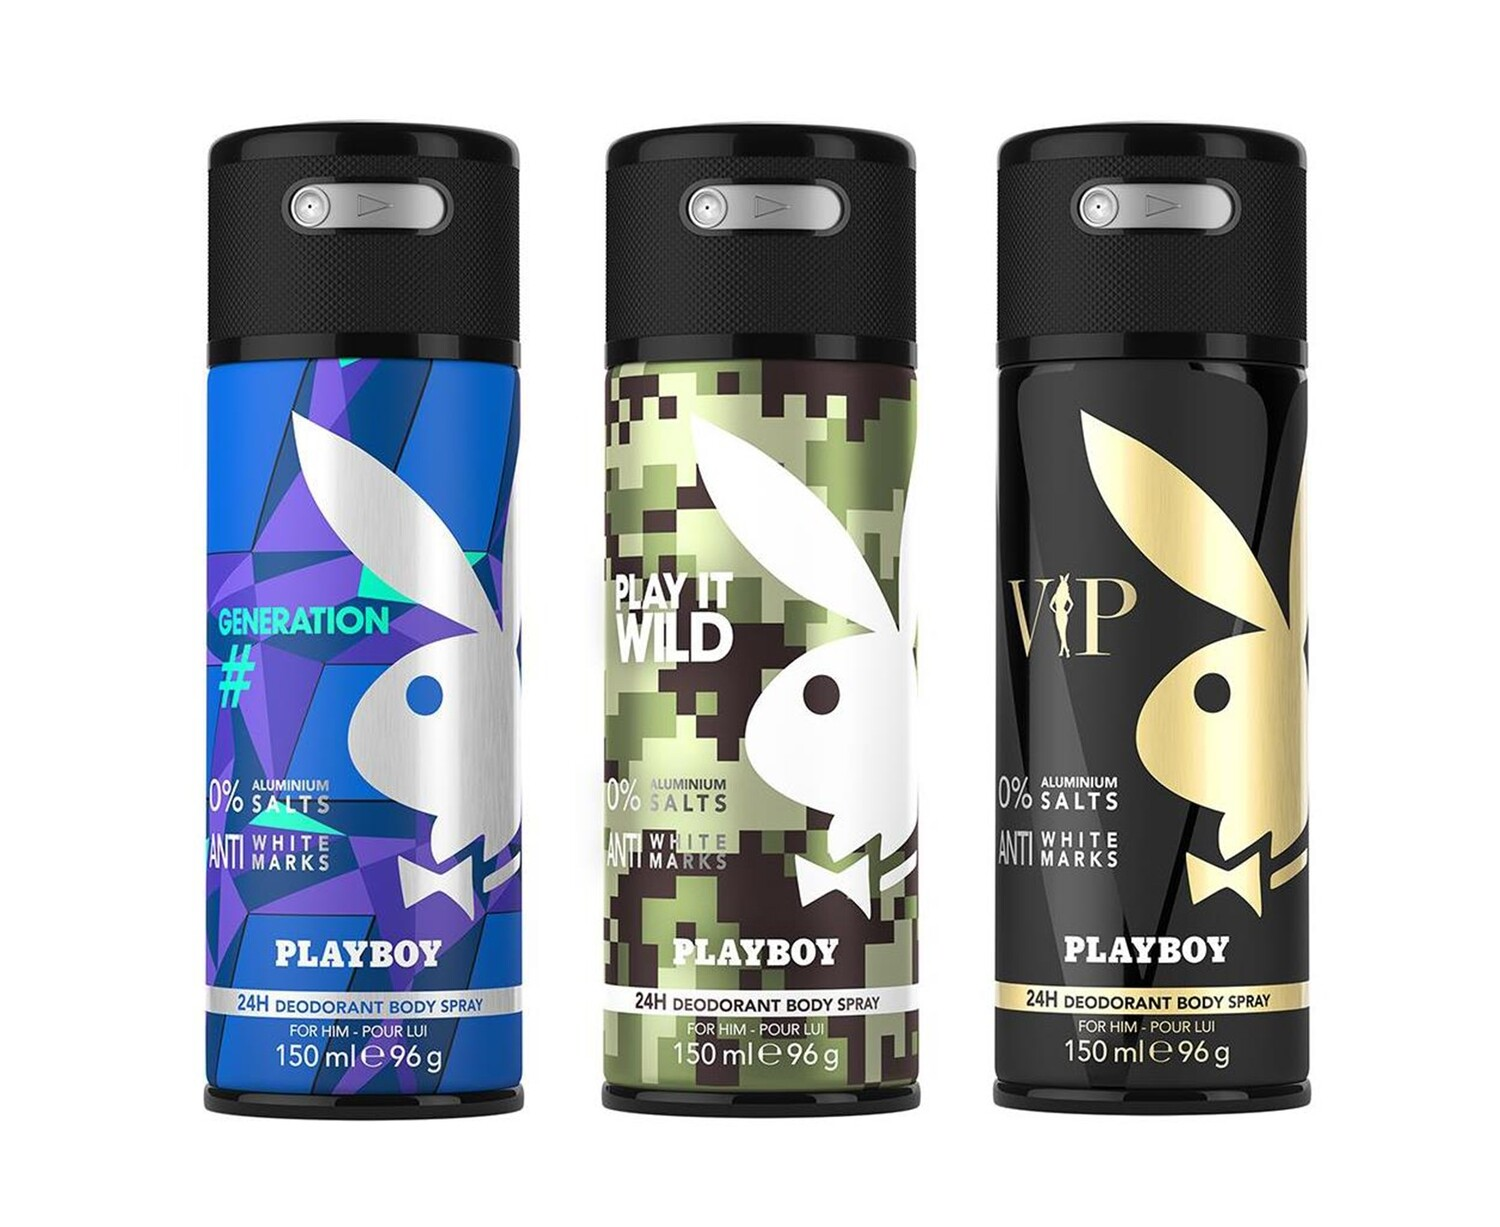 Playboy Generation + Wild + VIP Deo New Combo Set - Pack of 3 Men